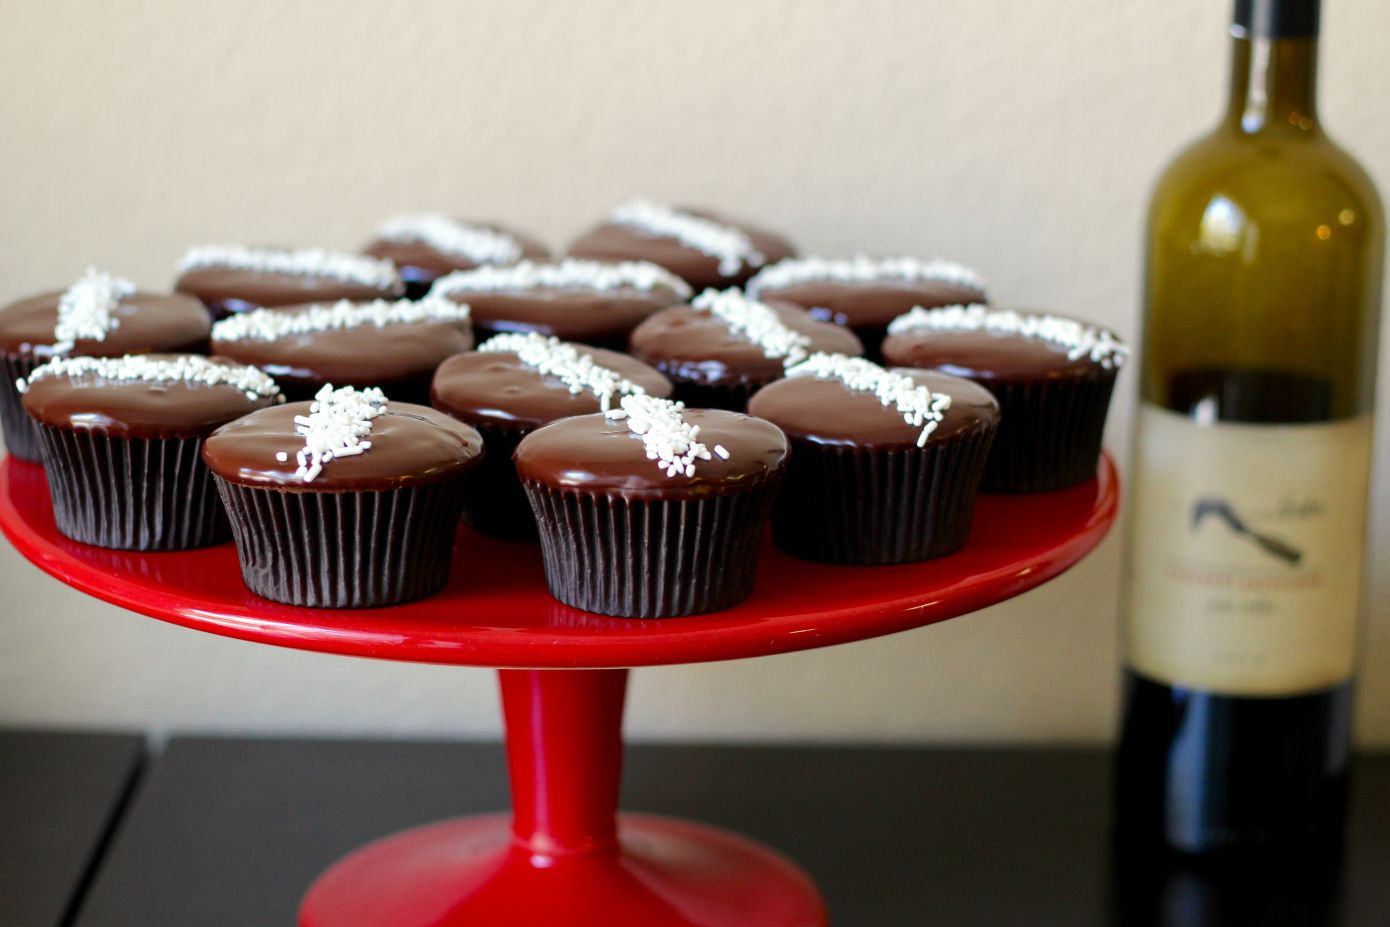 Baked Red Wine Chocolate Cupcakes - 5